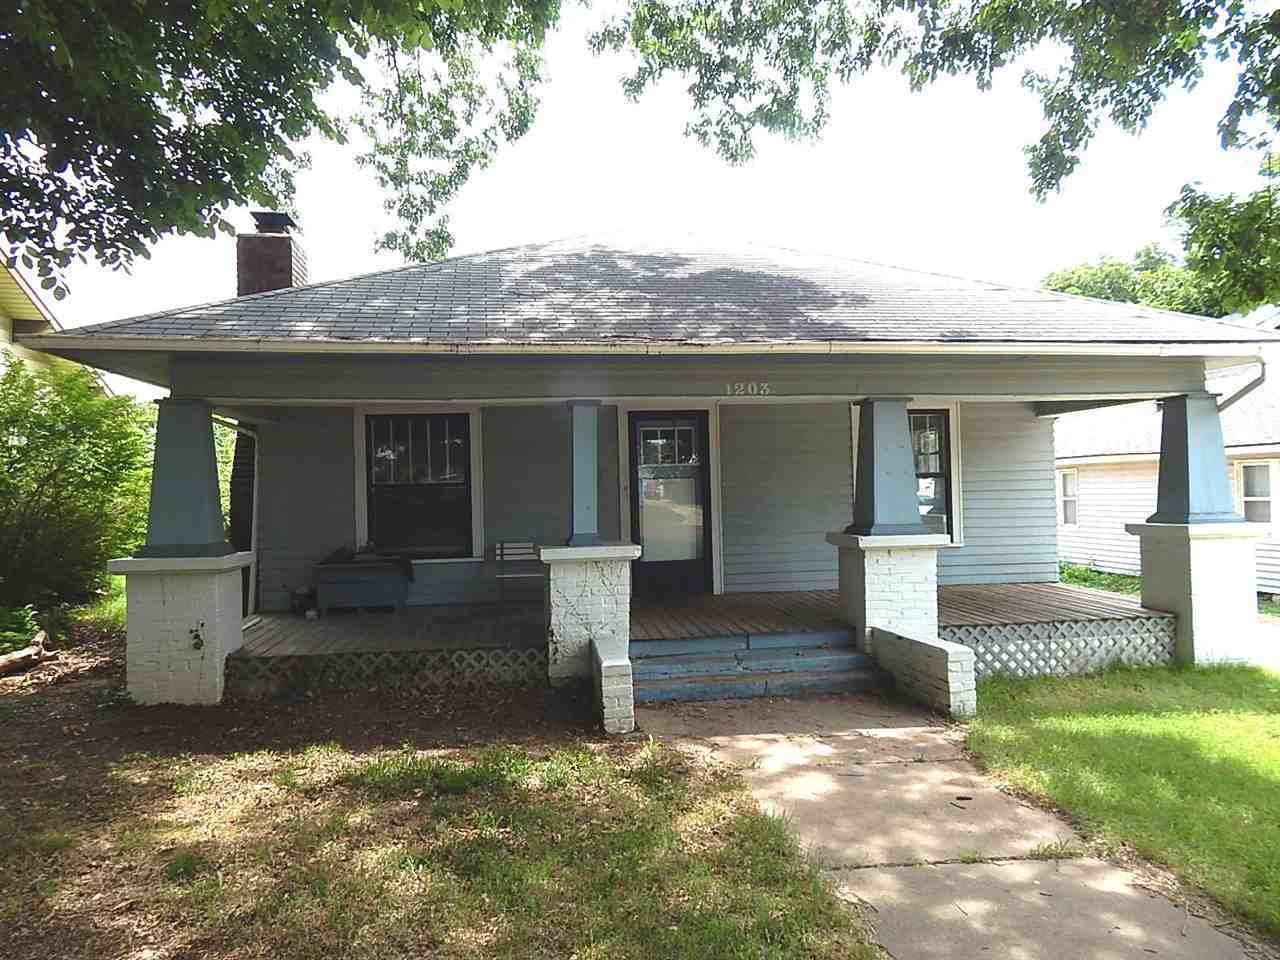 Sold Cross Sale W/ MLS | 1203 S 5th Ponca City, OK 74601 0